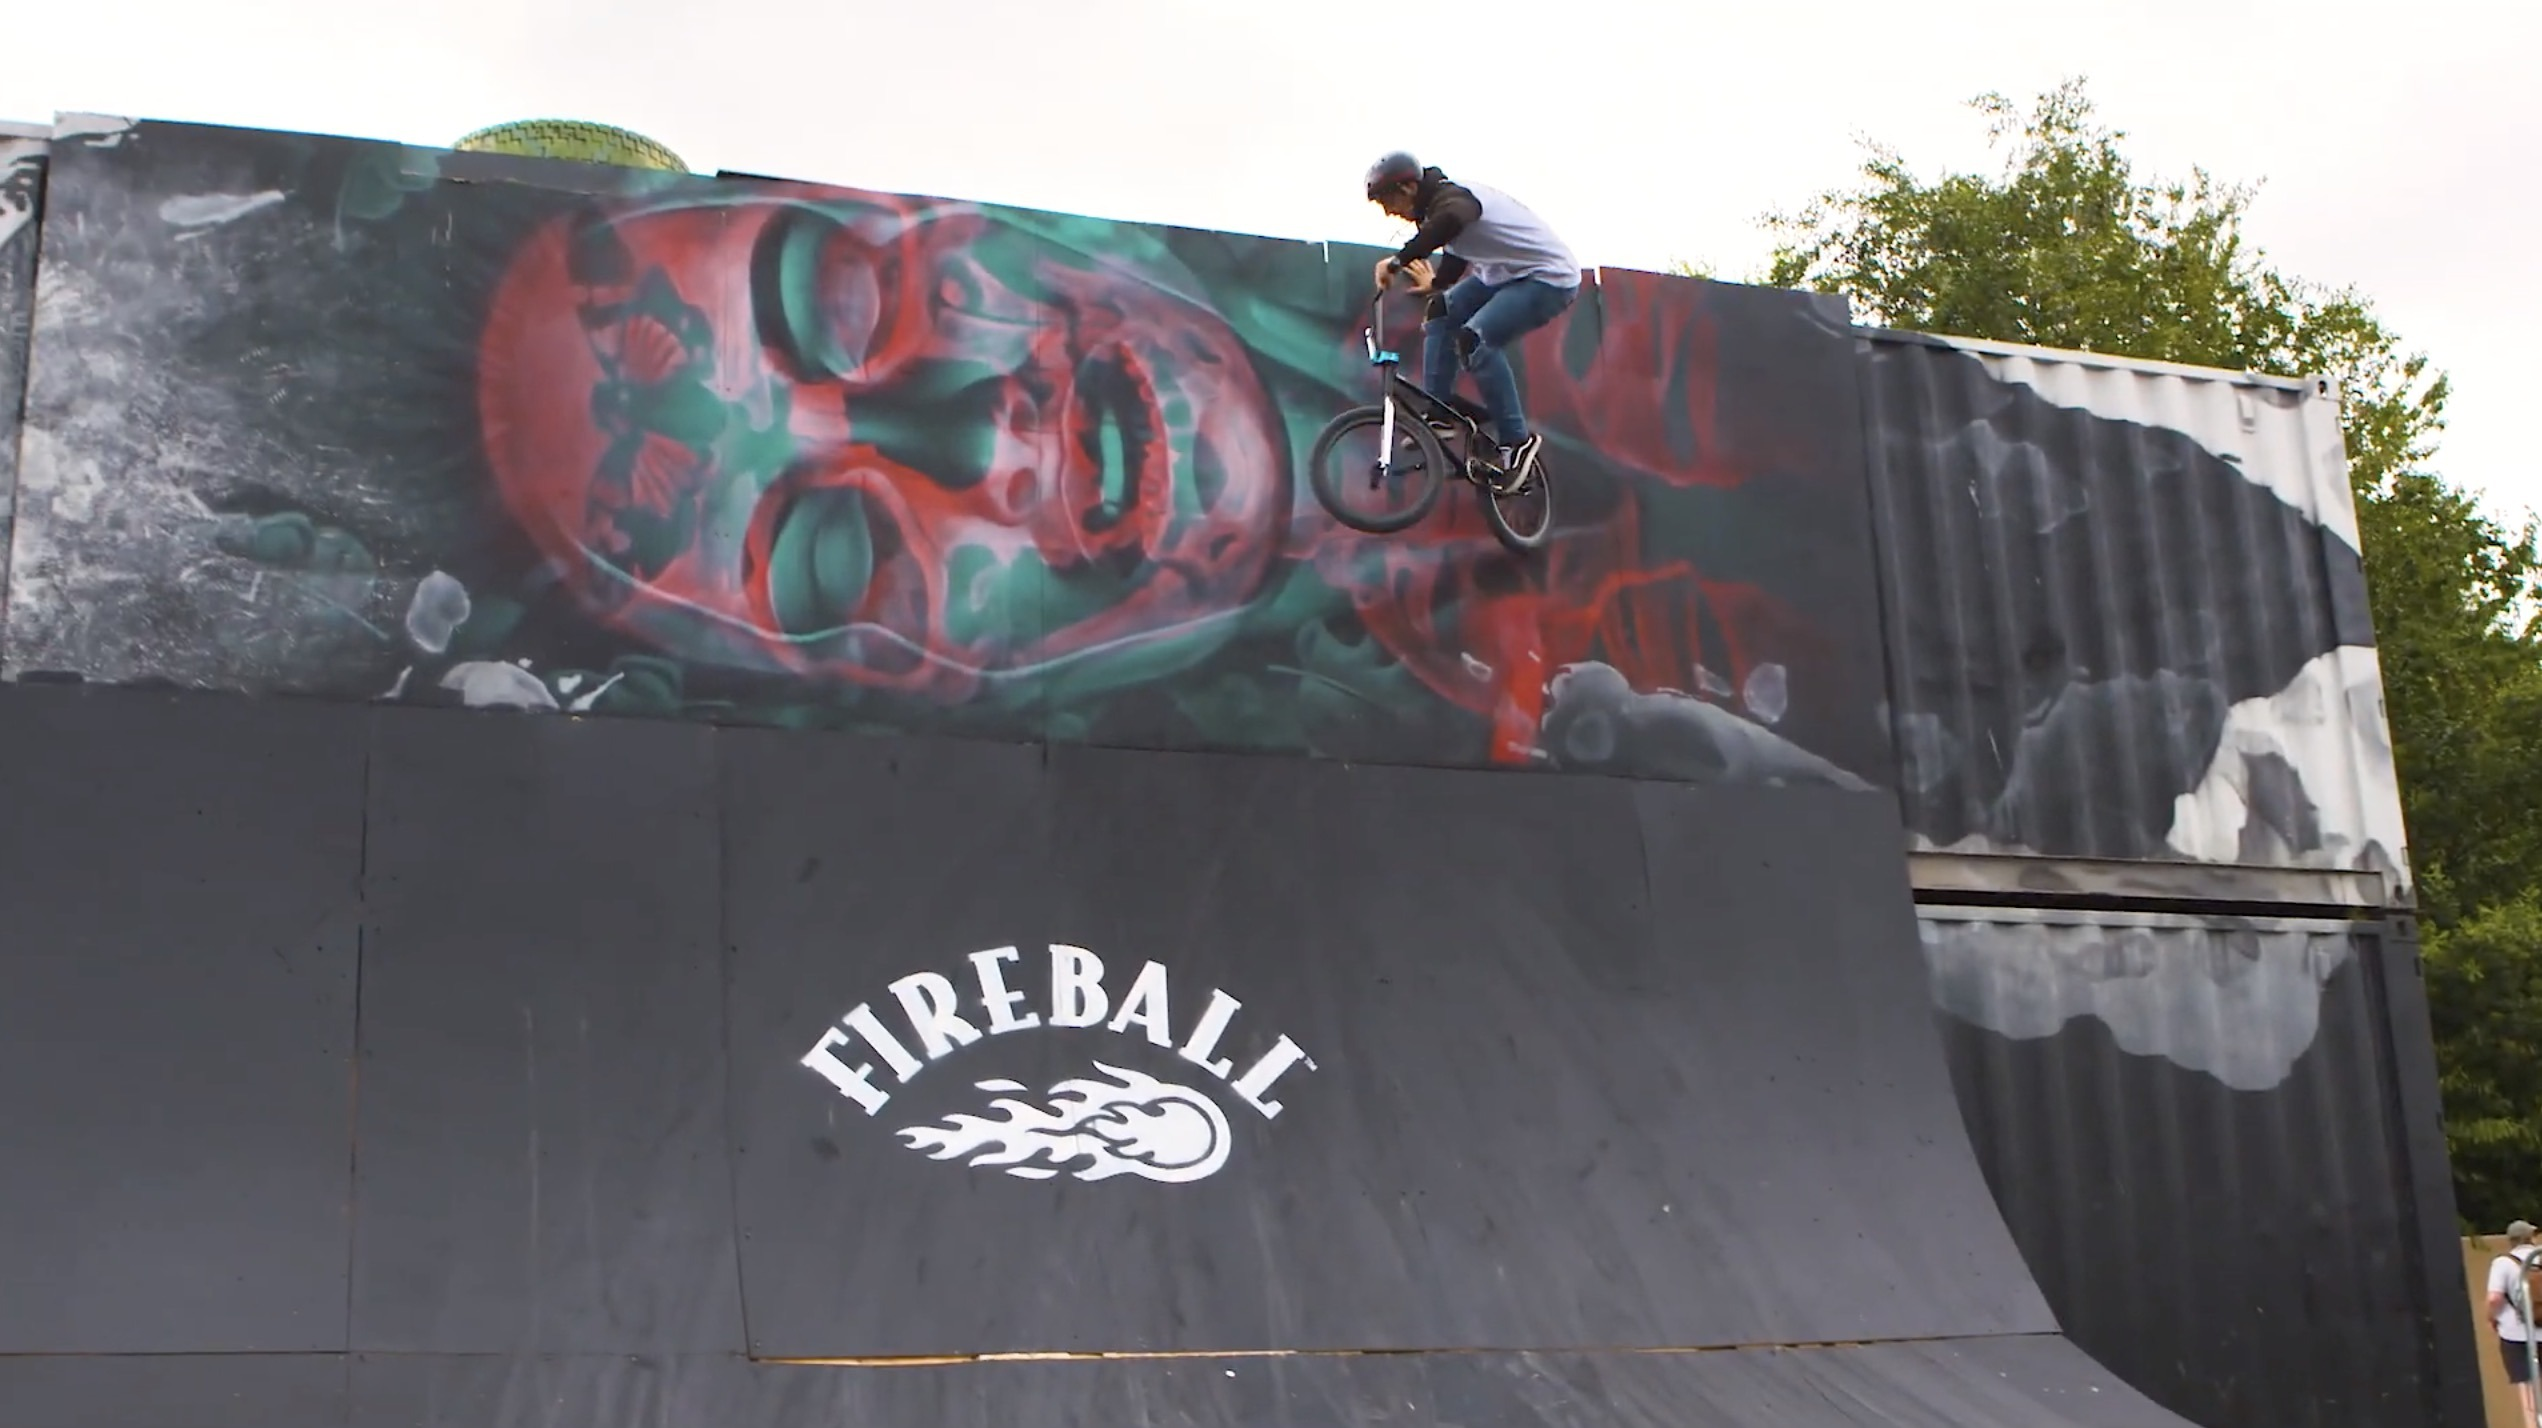 NASS 2019: Wallride Jam Highlights